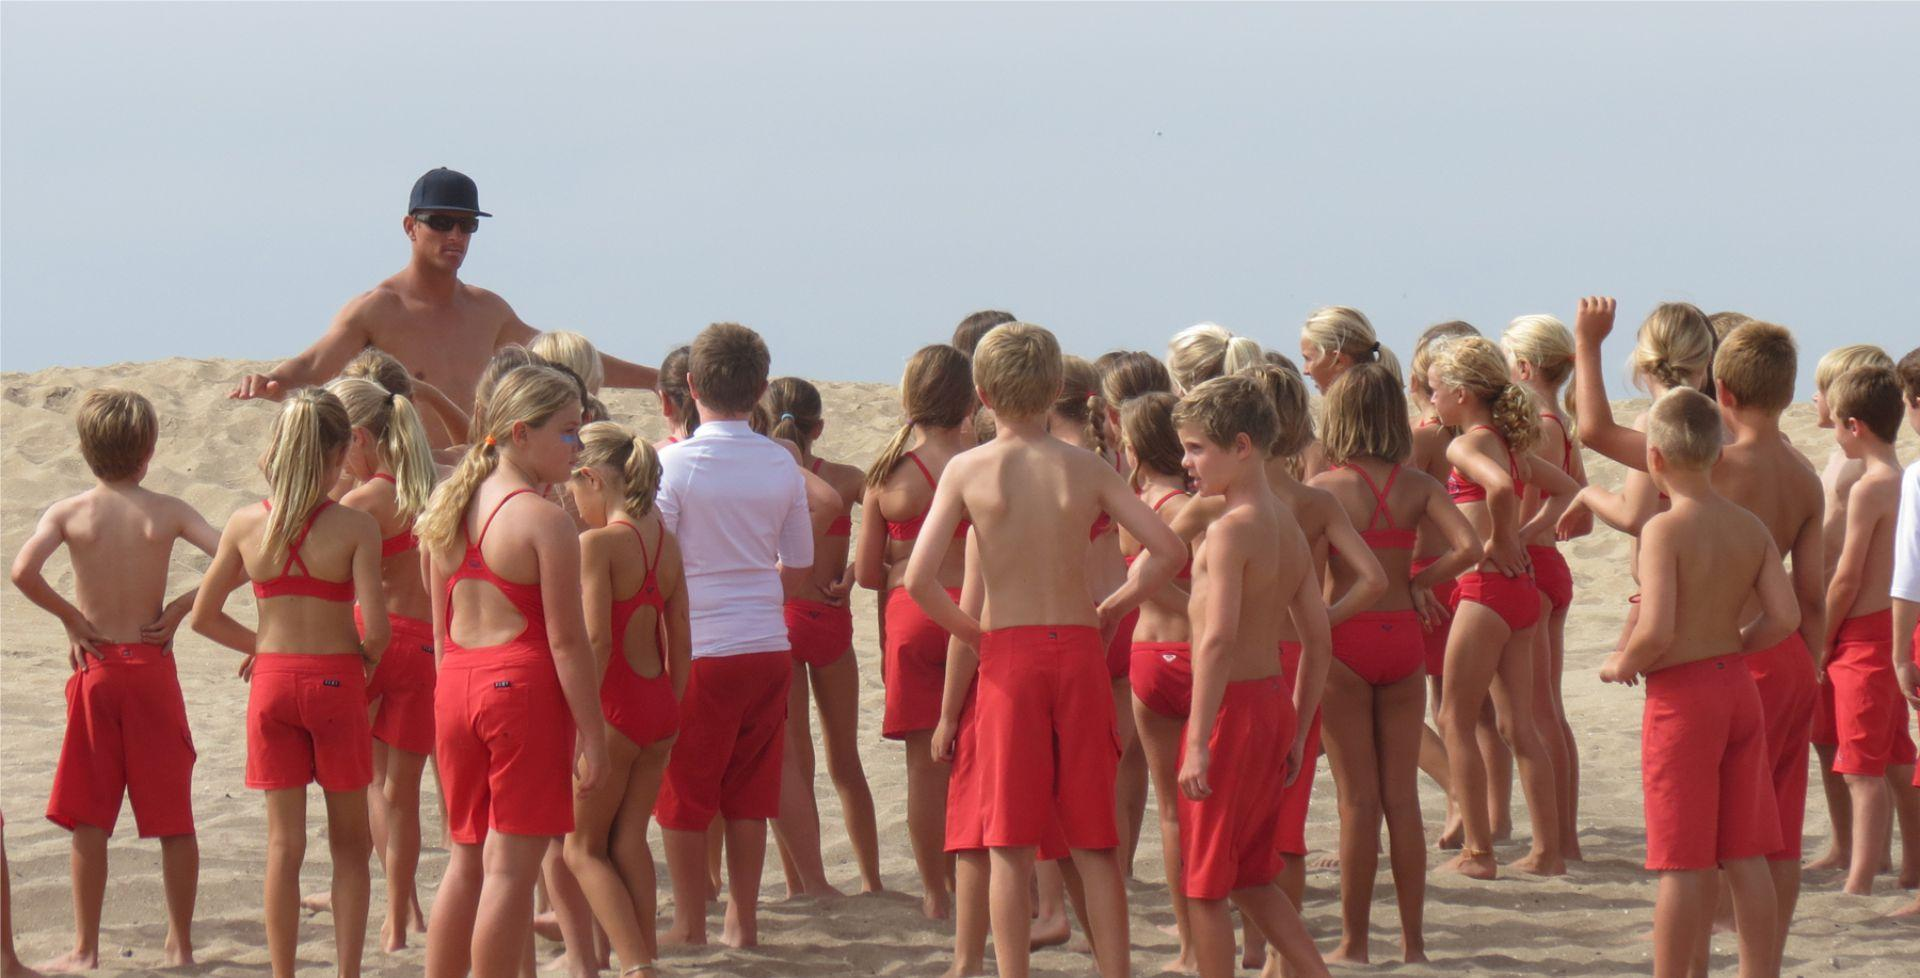 American Lifeguard Association for Instructors and Swim Coaches